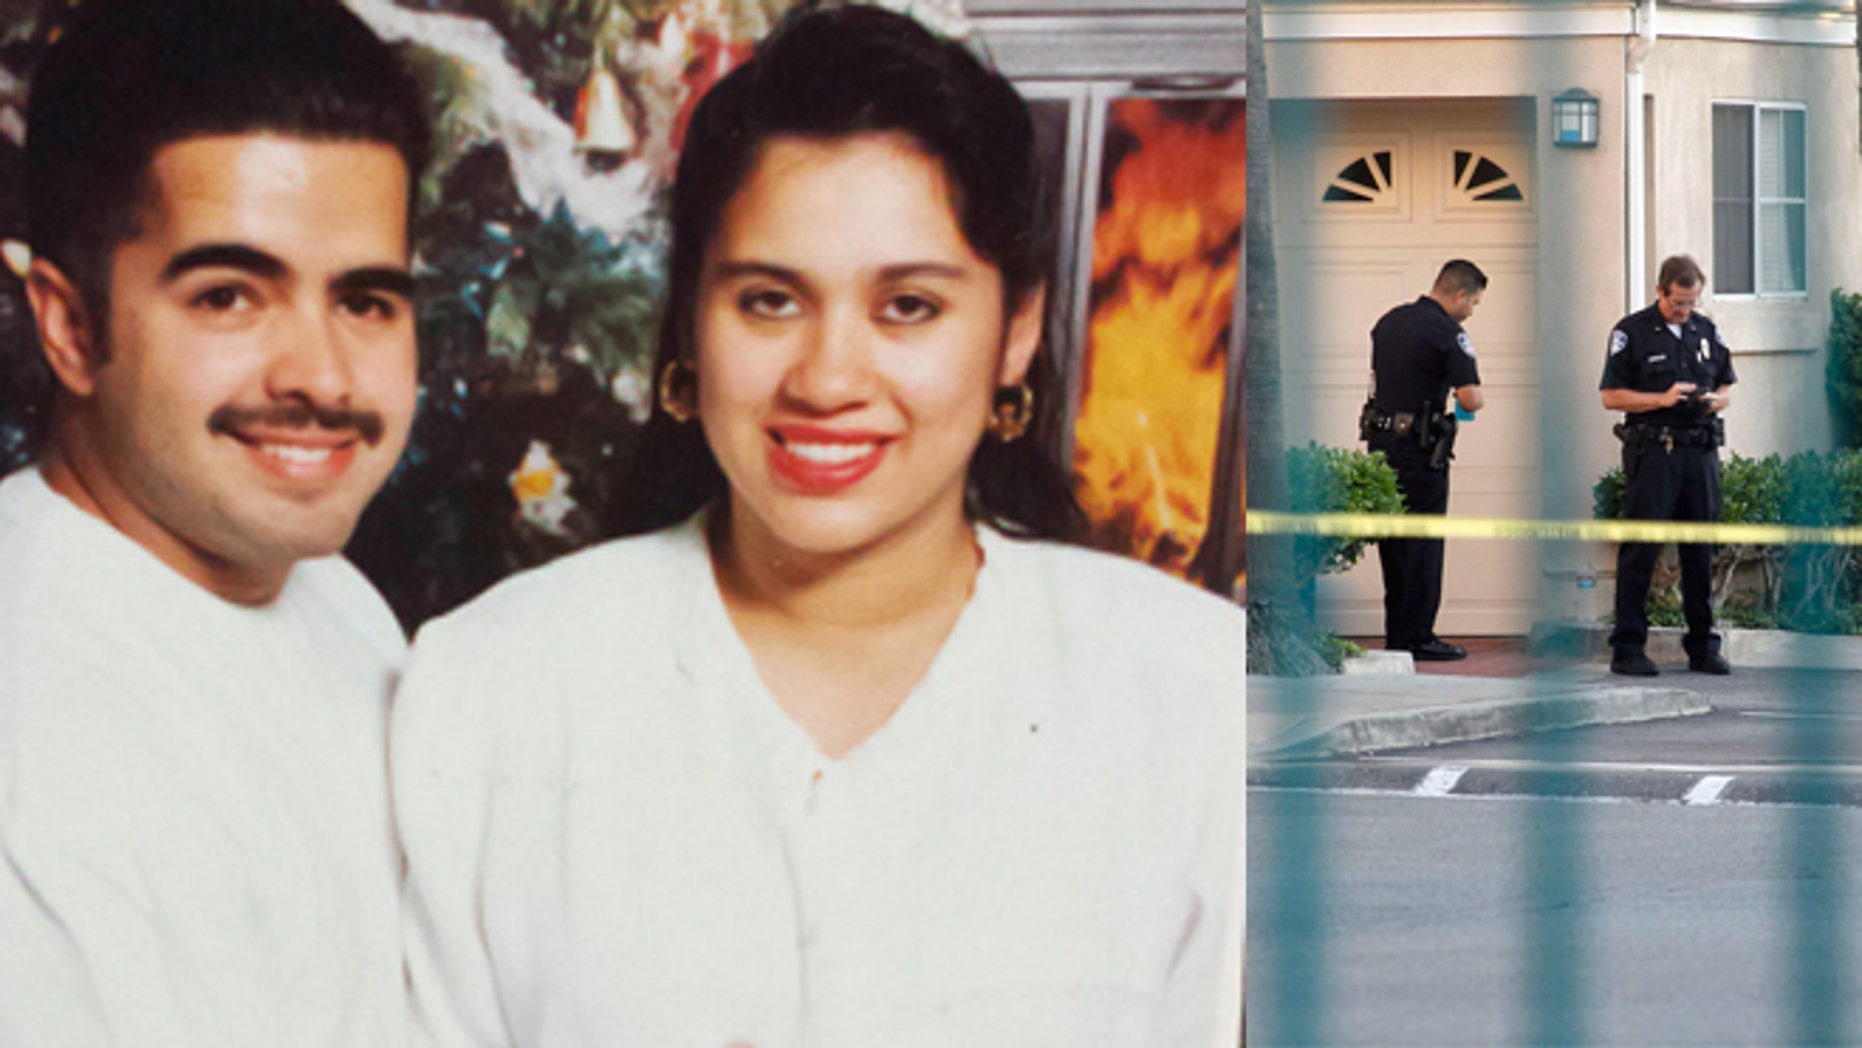 Daniel Crespo and his wife Levette Crespo (left) and crime scene on Tuesday at Crespo family residence (right).